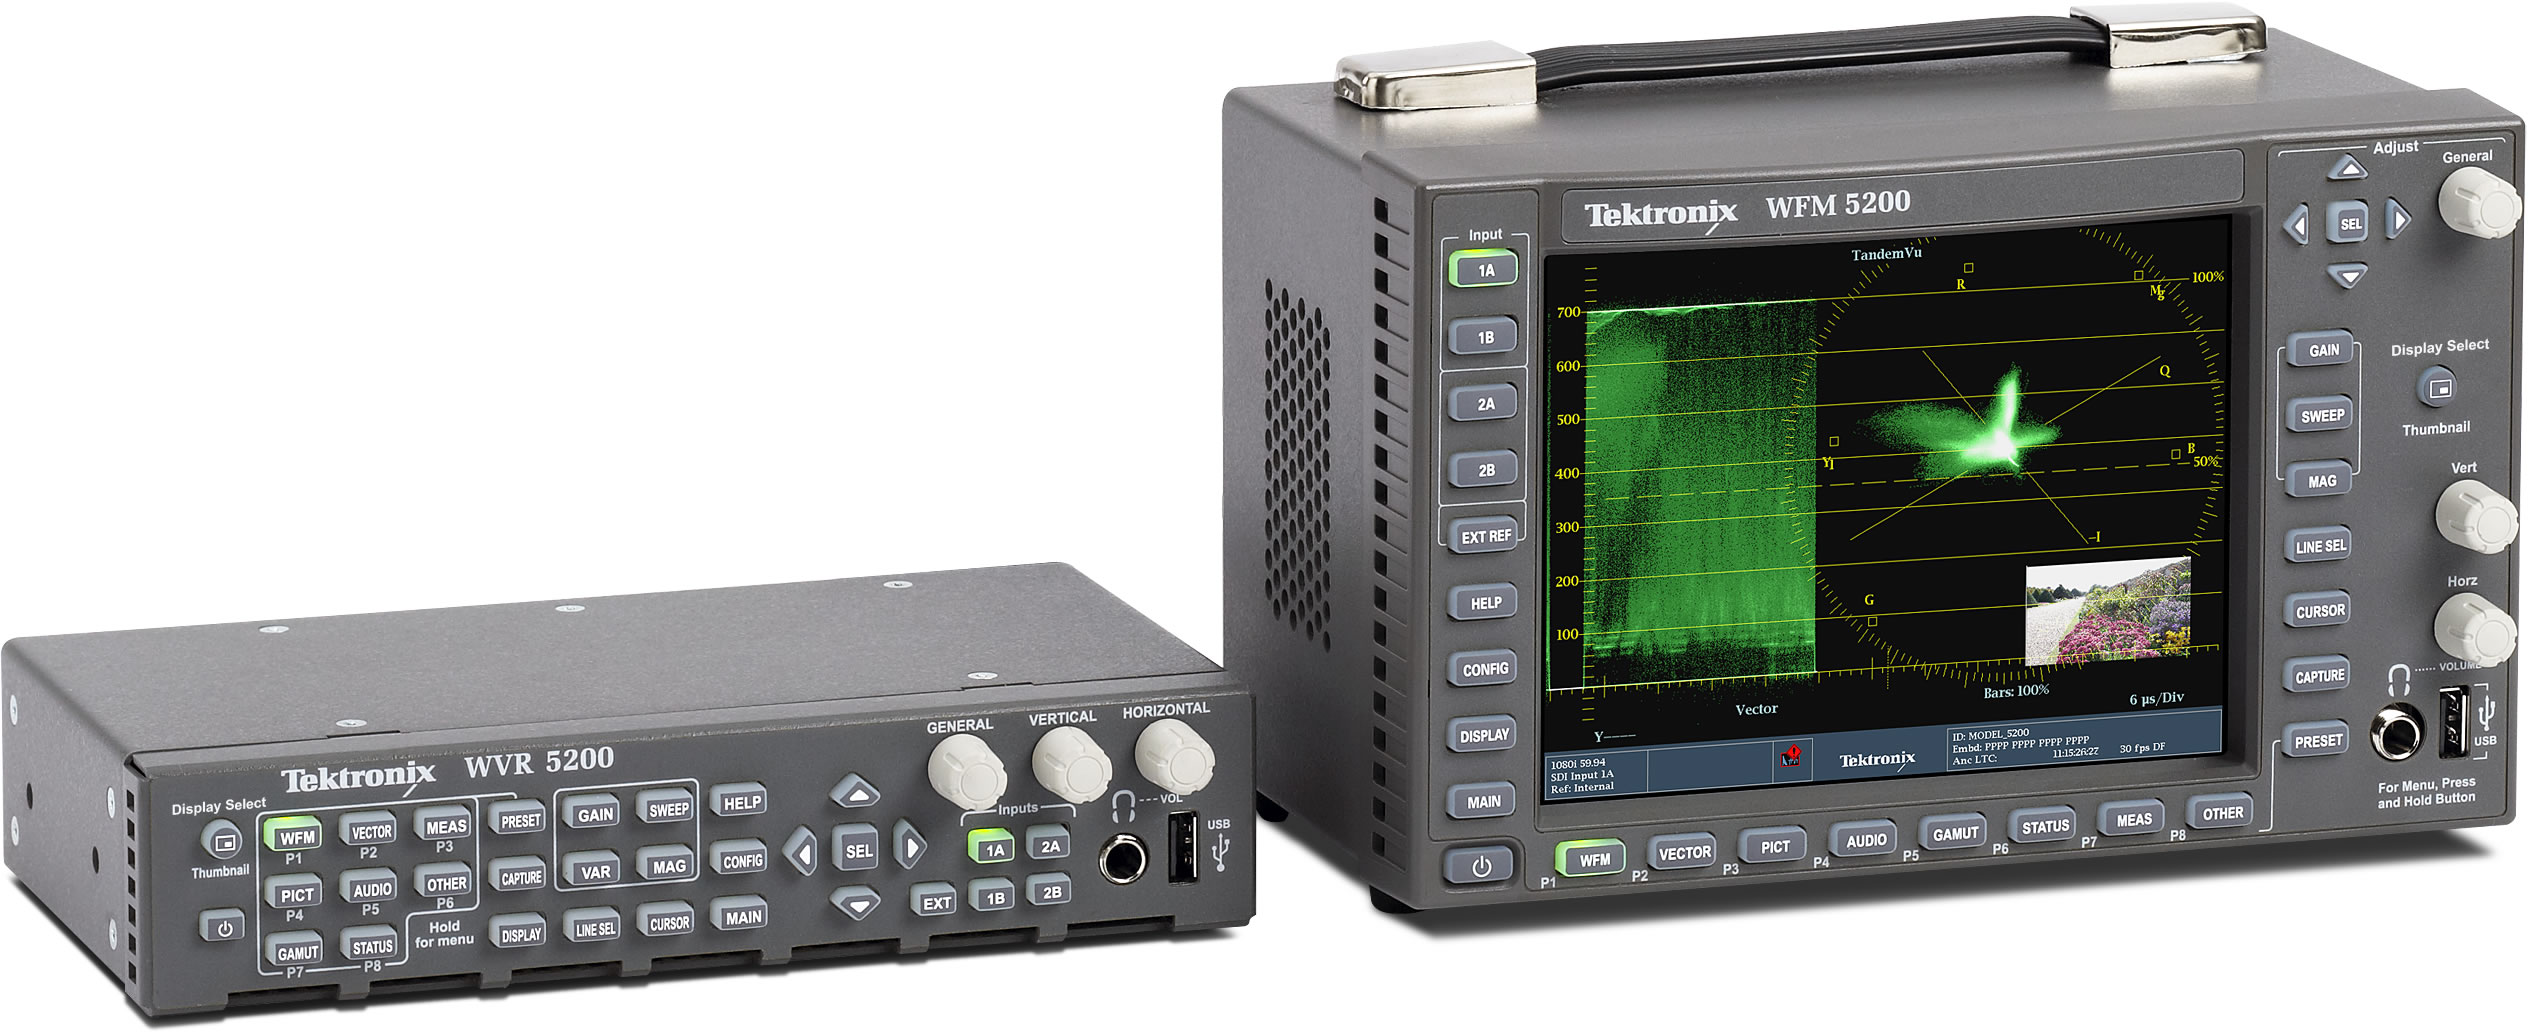 Video Test and Monitoring Equipment, Waveform Monitors